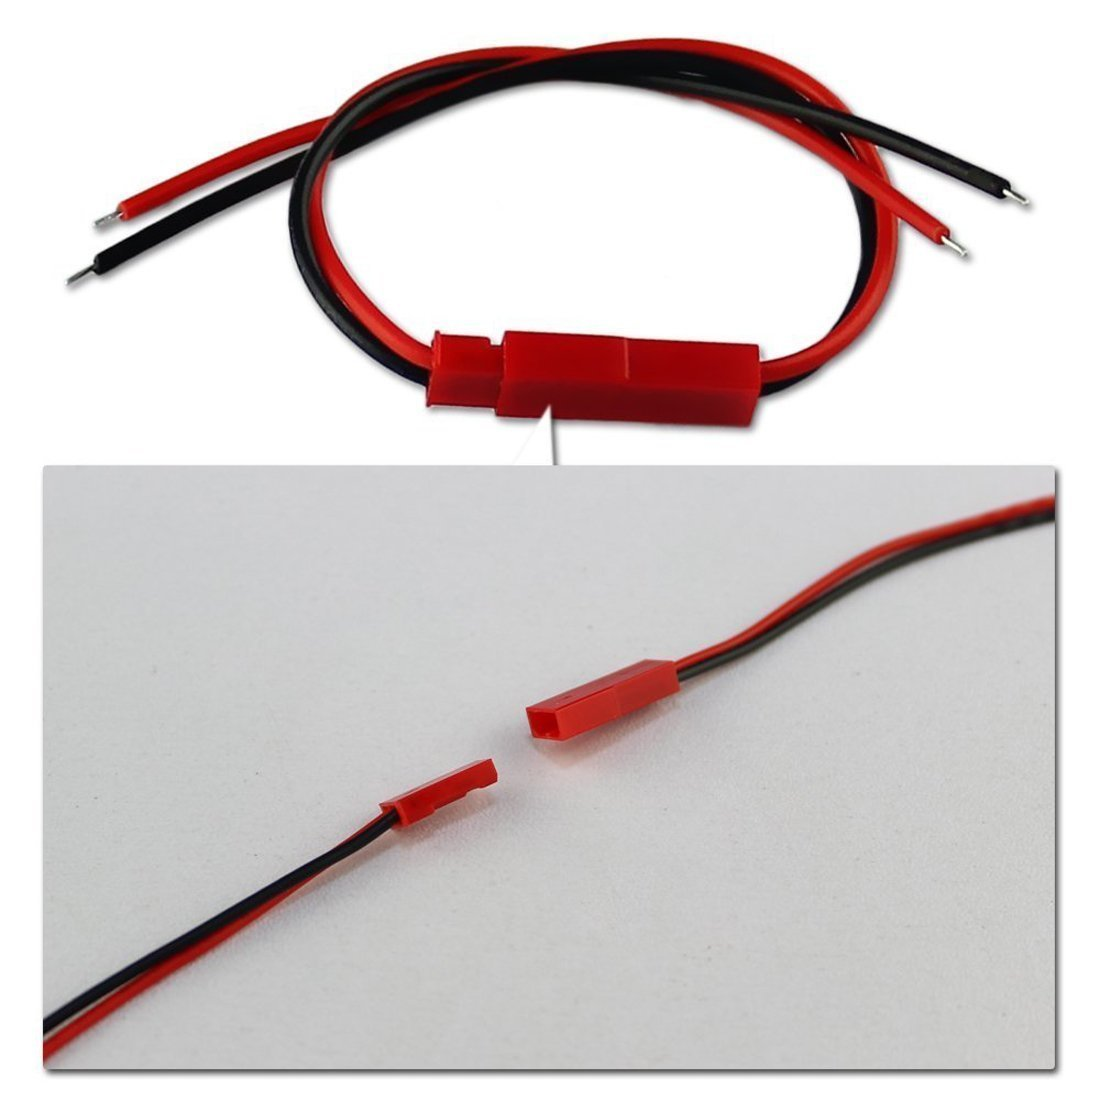 Amazon.com: 10 Pairs 100mm JST 2 Pin Connector Plug Lead Wire for Rc ...